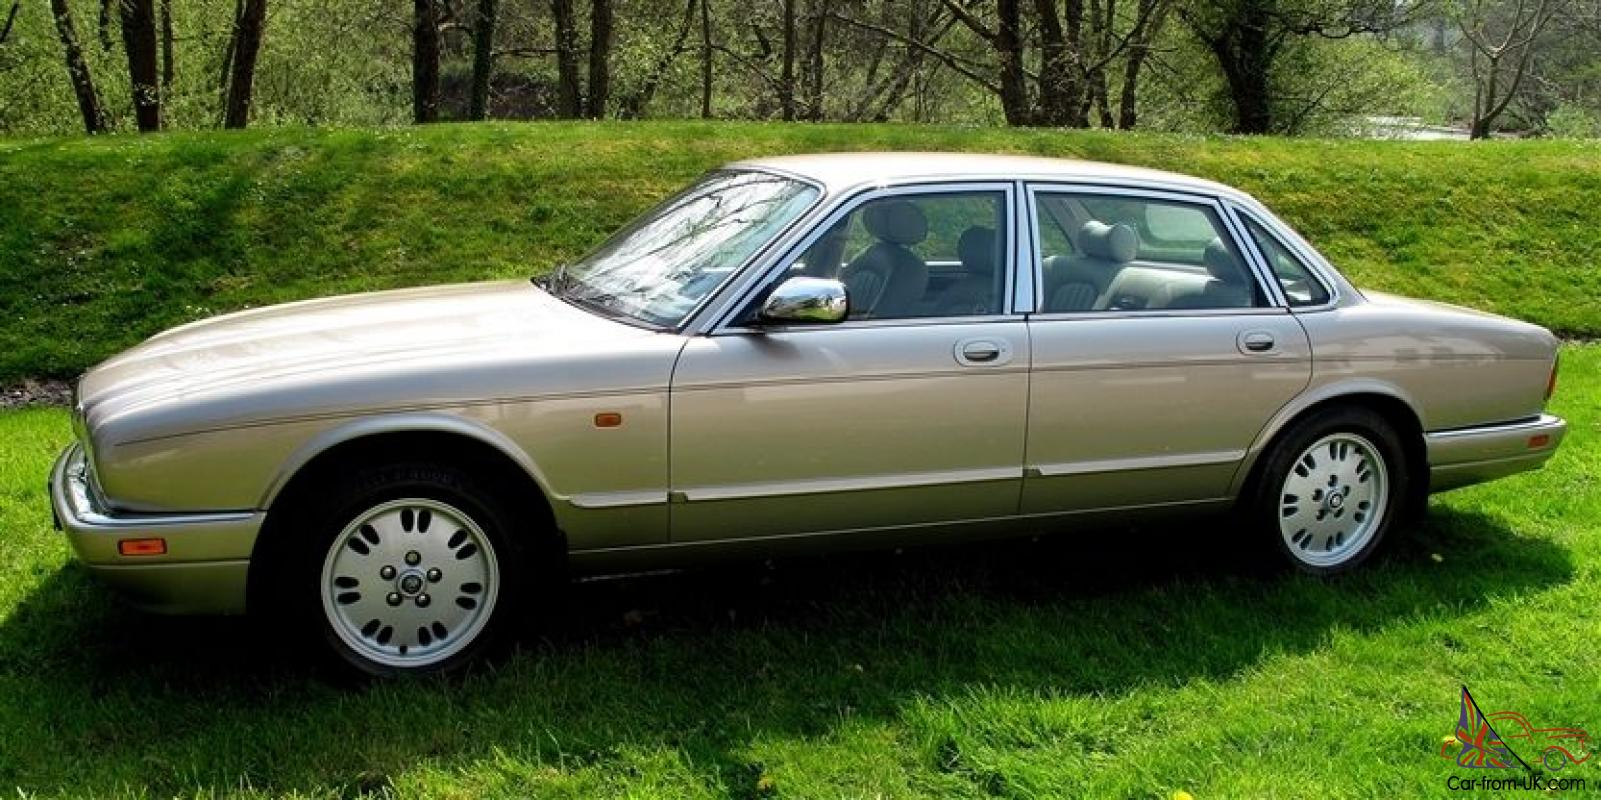 1995 jaguar xj6 3 2 sovereign auto x300 just 50k miles 18 stamps immaculate